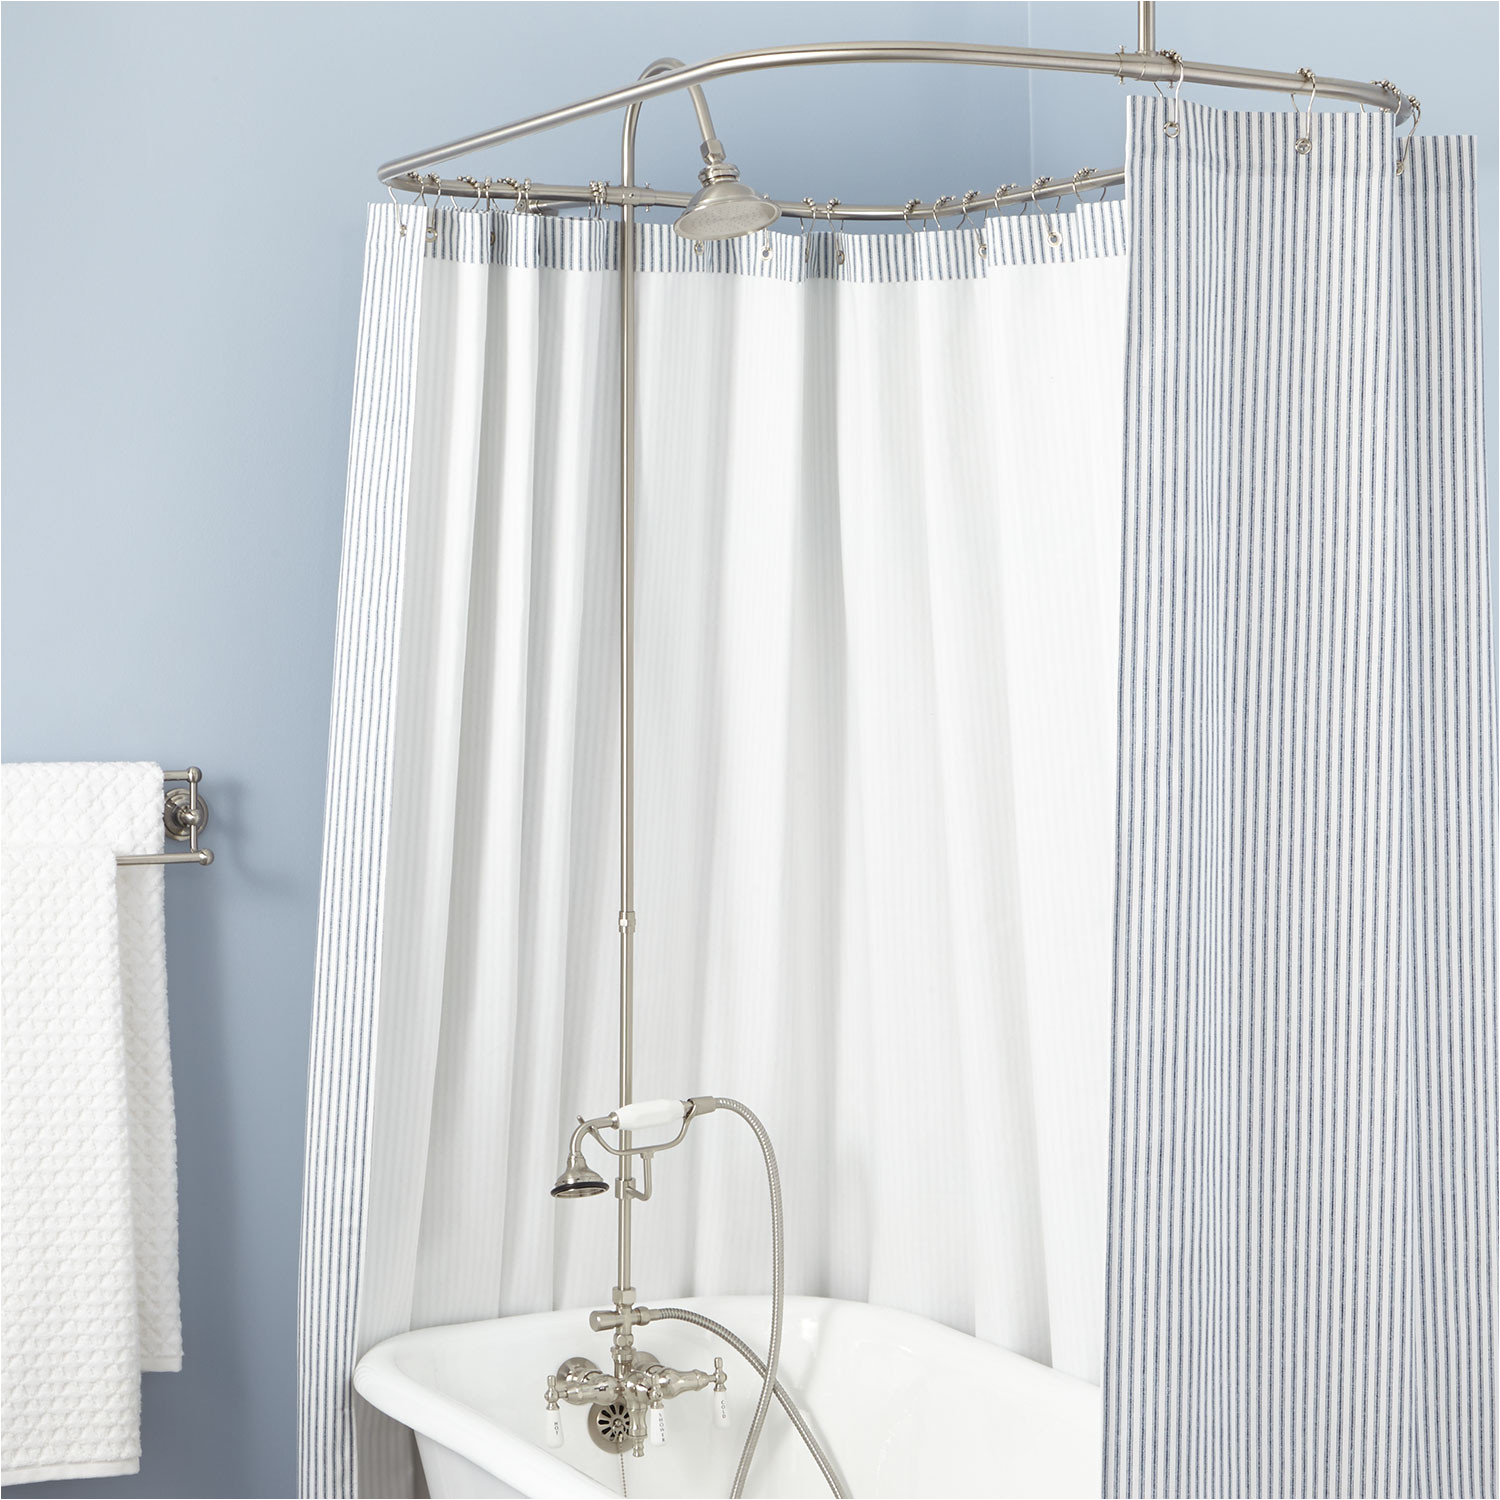 clawfoot tub solid brass shower conversion kit with hand shower